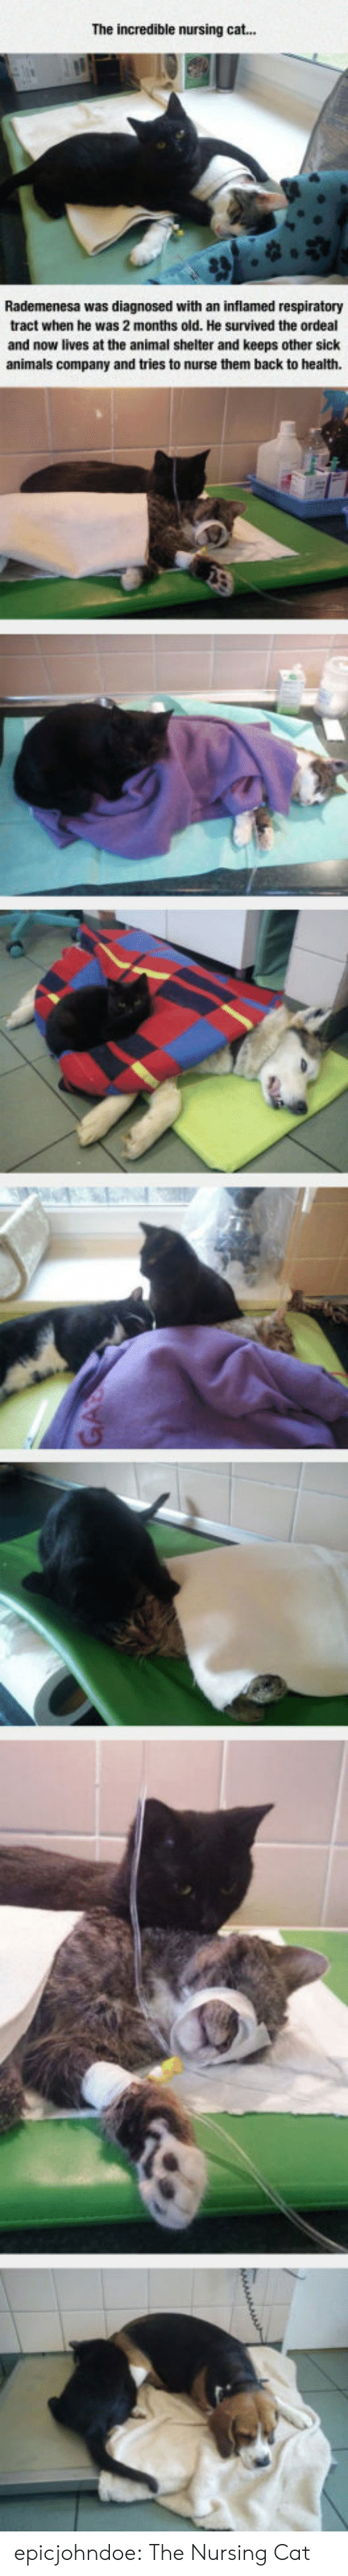 Animals, Tumblr, and Animal: The incredible nursing cat...  Rademenesa was diagnosed with an inflamed respiratory  tract when he was 2 months old. He survived the ordeal  and now lives at the animal shelter and keeps other sick  animals company and tries to nurse them back to health. epicjohndoe:  The Nursing Cat